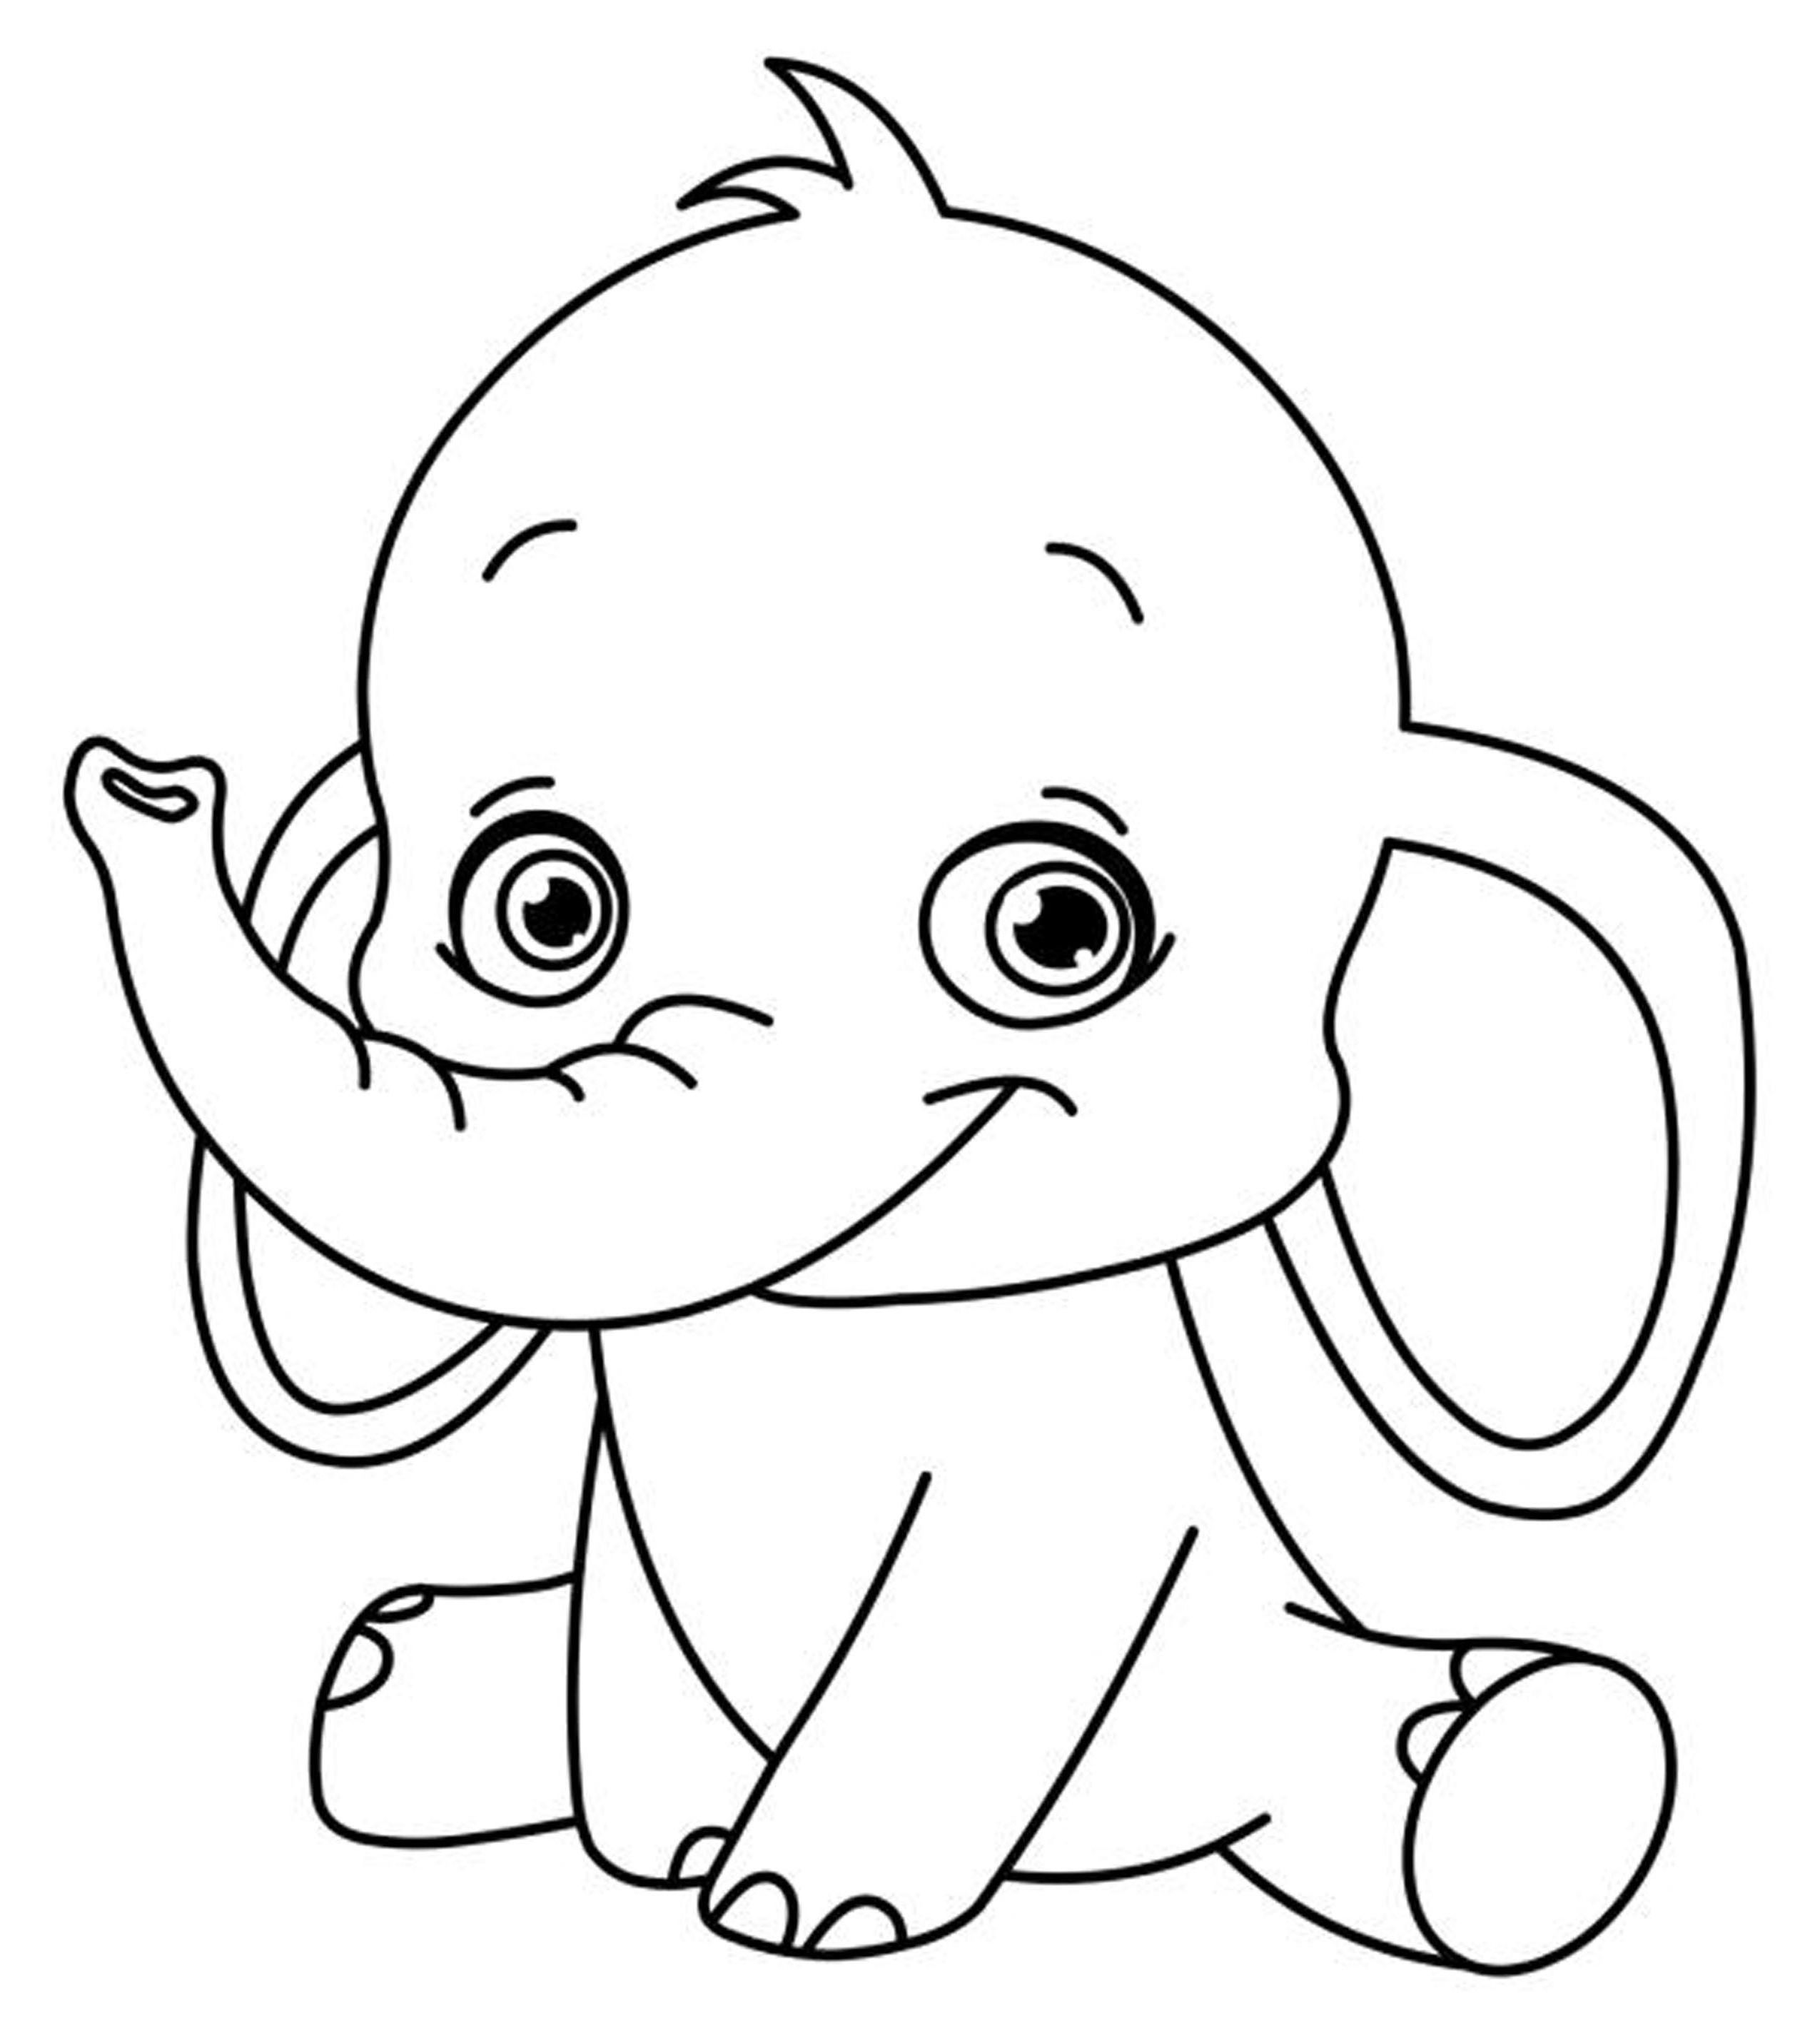 Easy Coloring Pages  Elephant coloring page, Elephant colouring